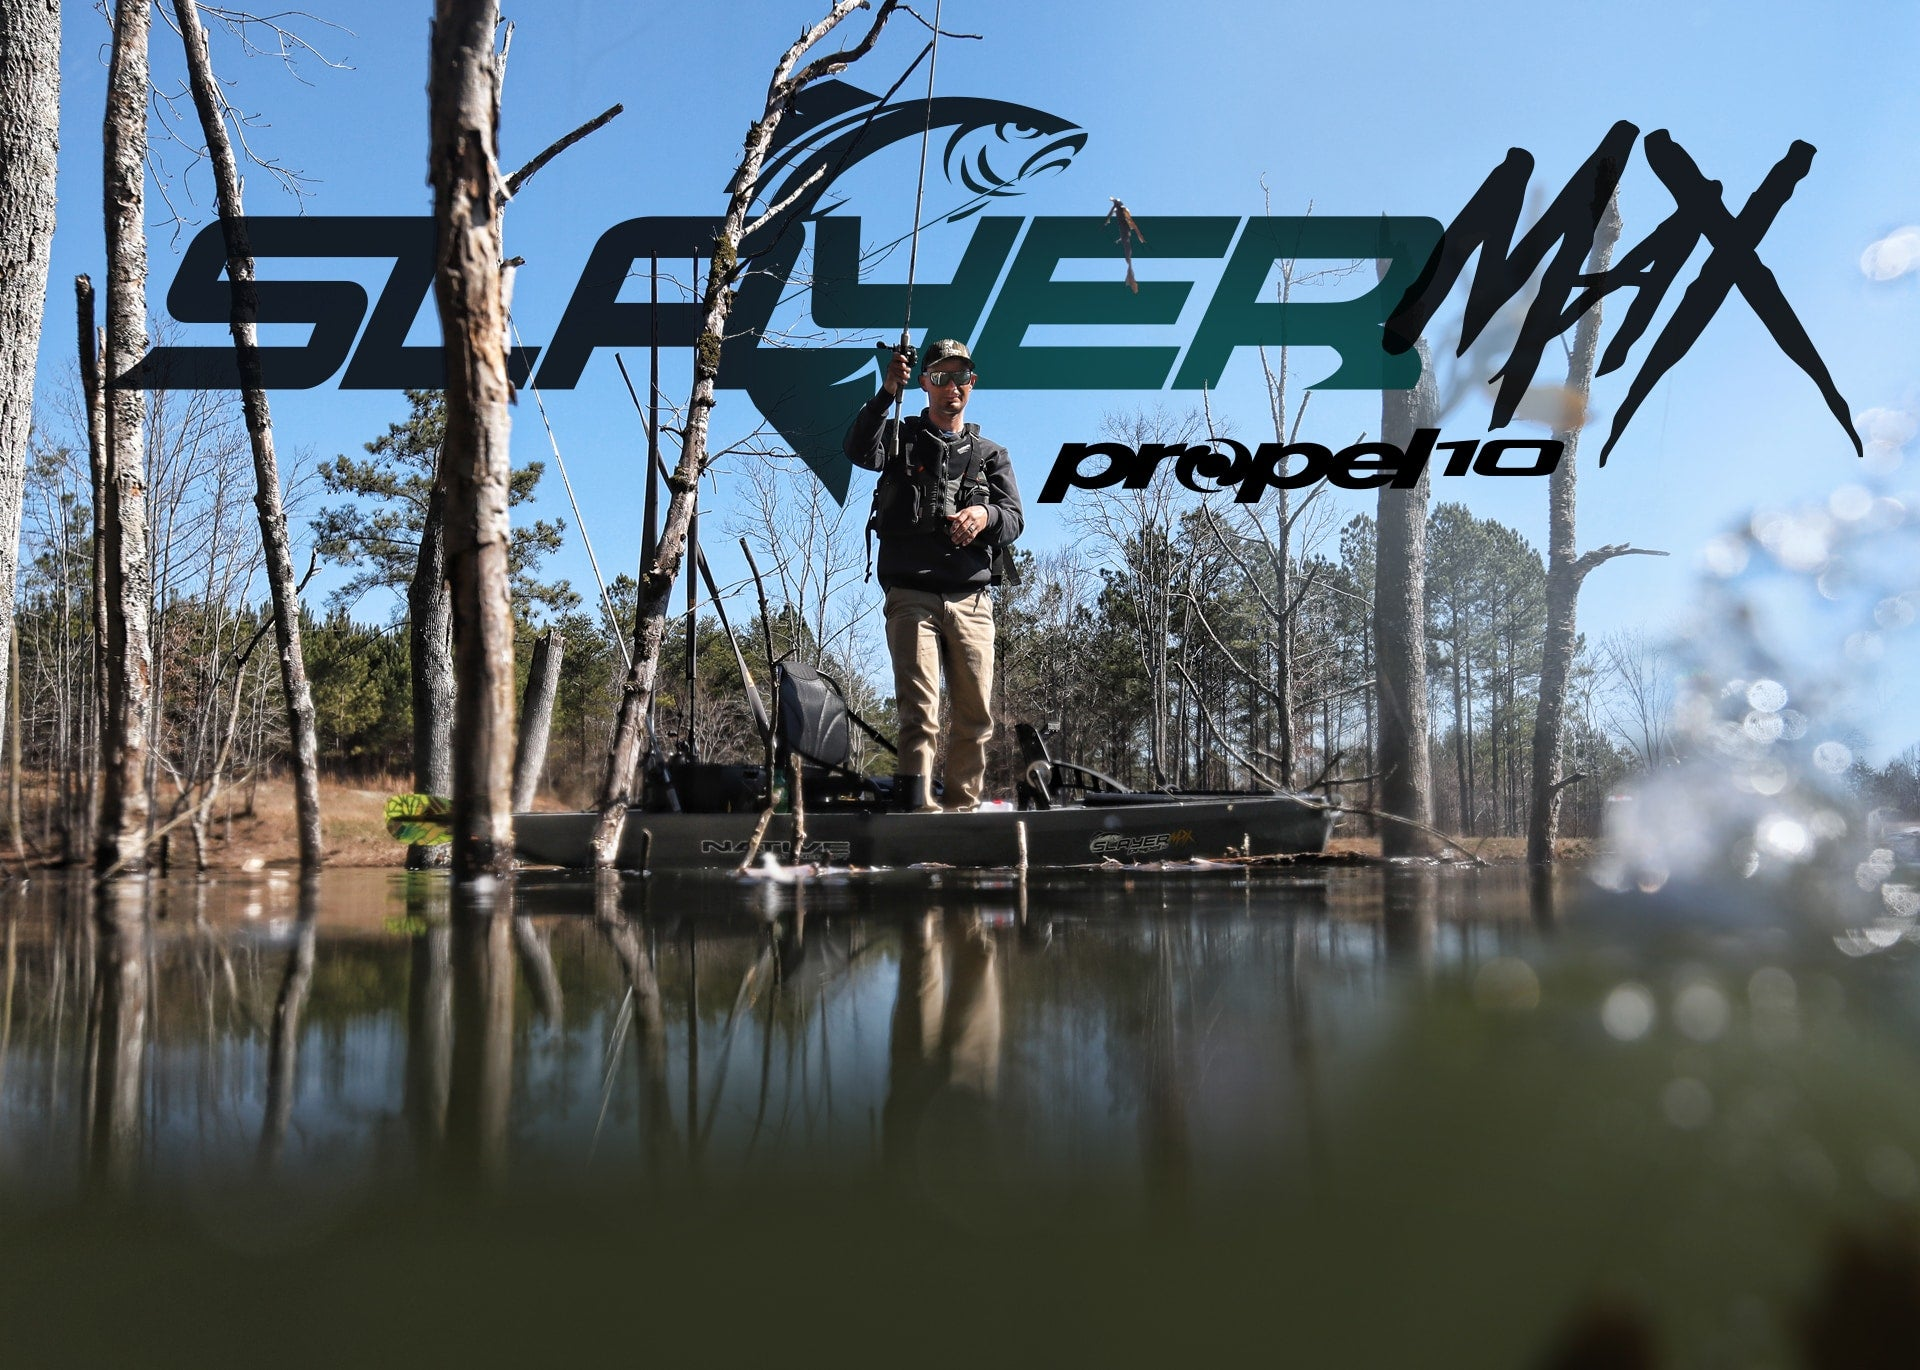 Angler fishing in a Slayer Max Propel 10